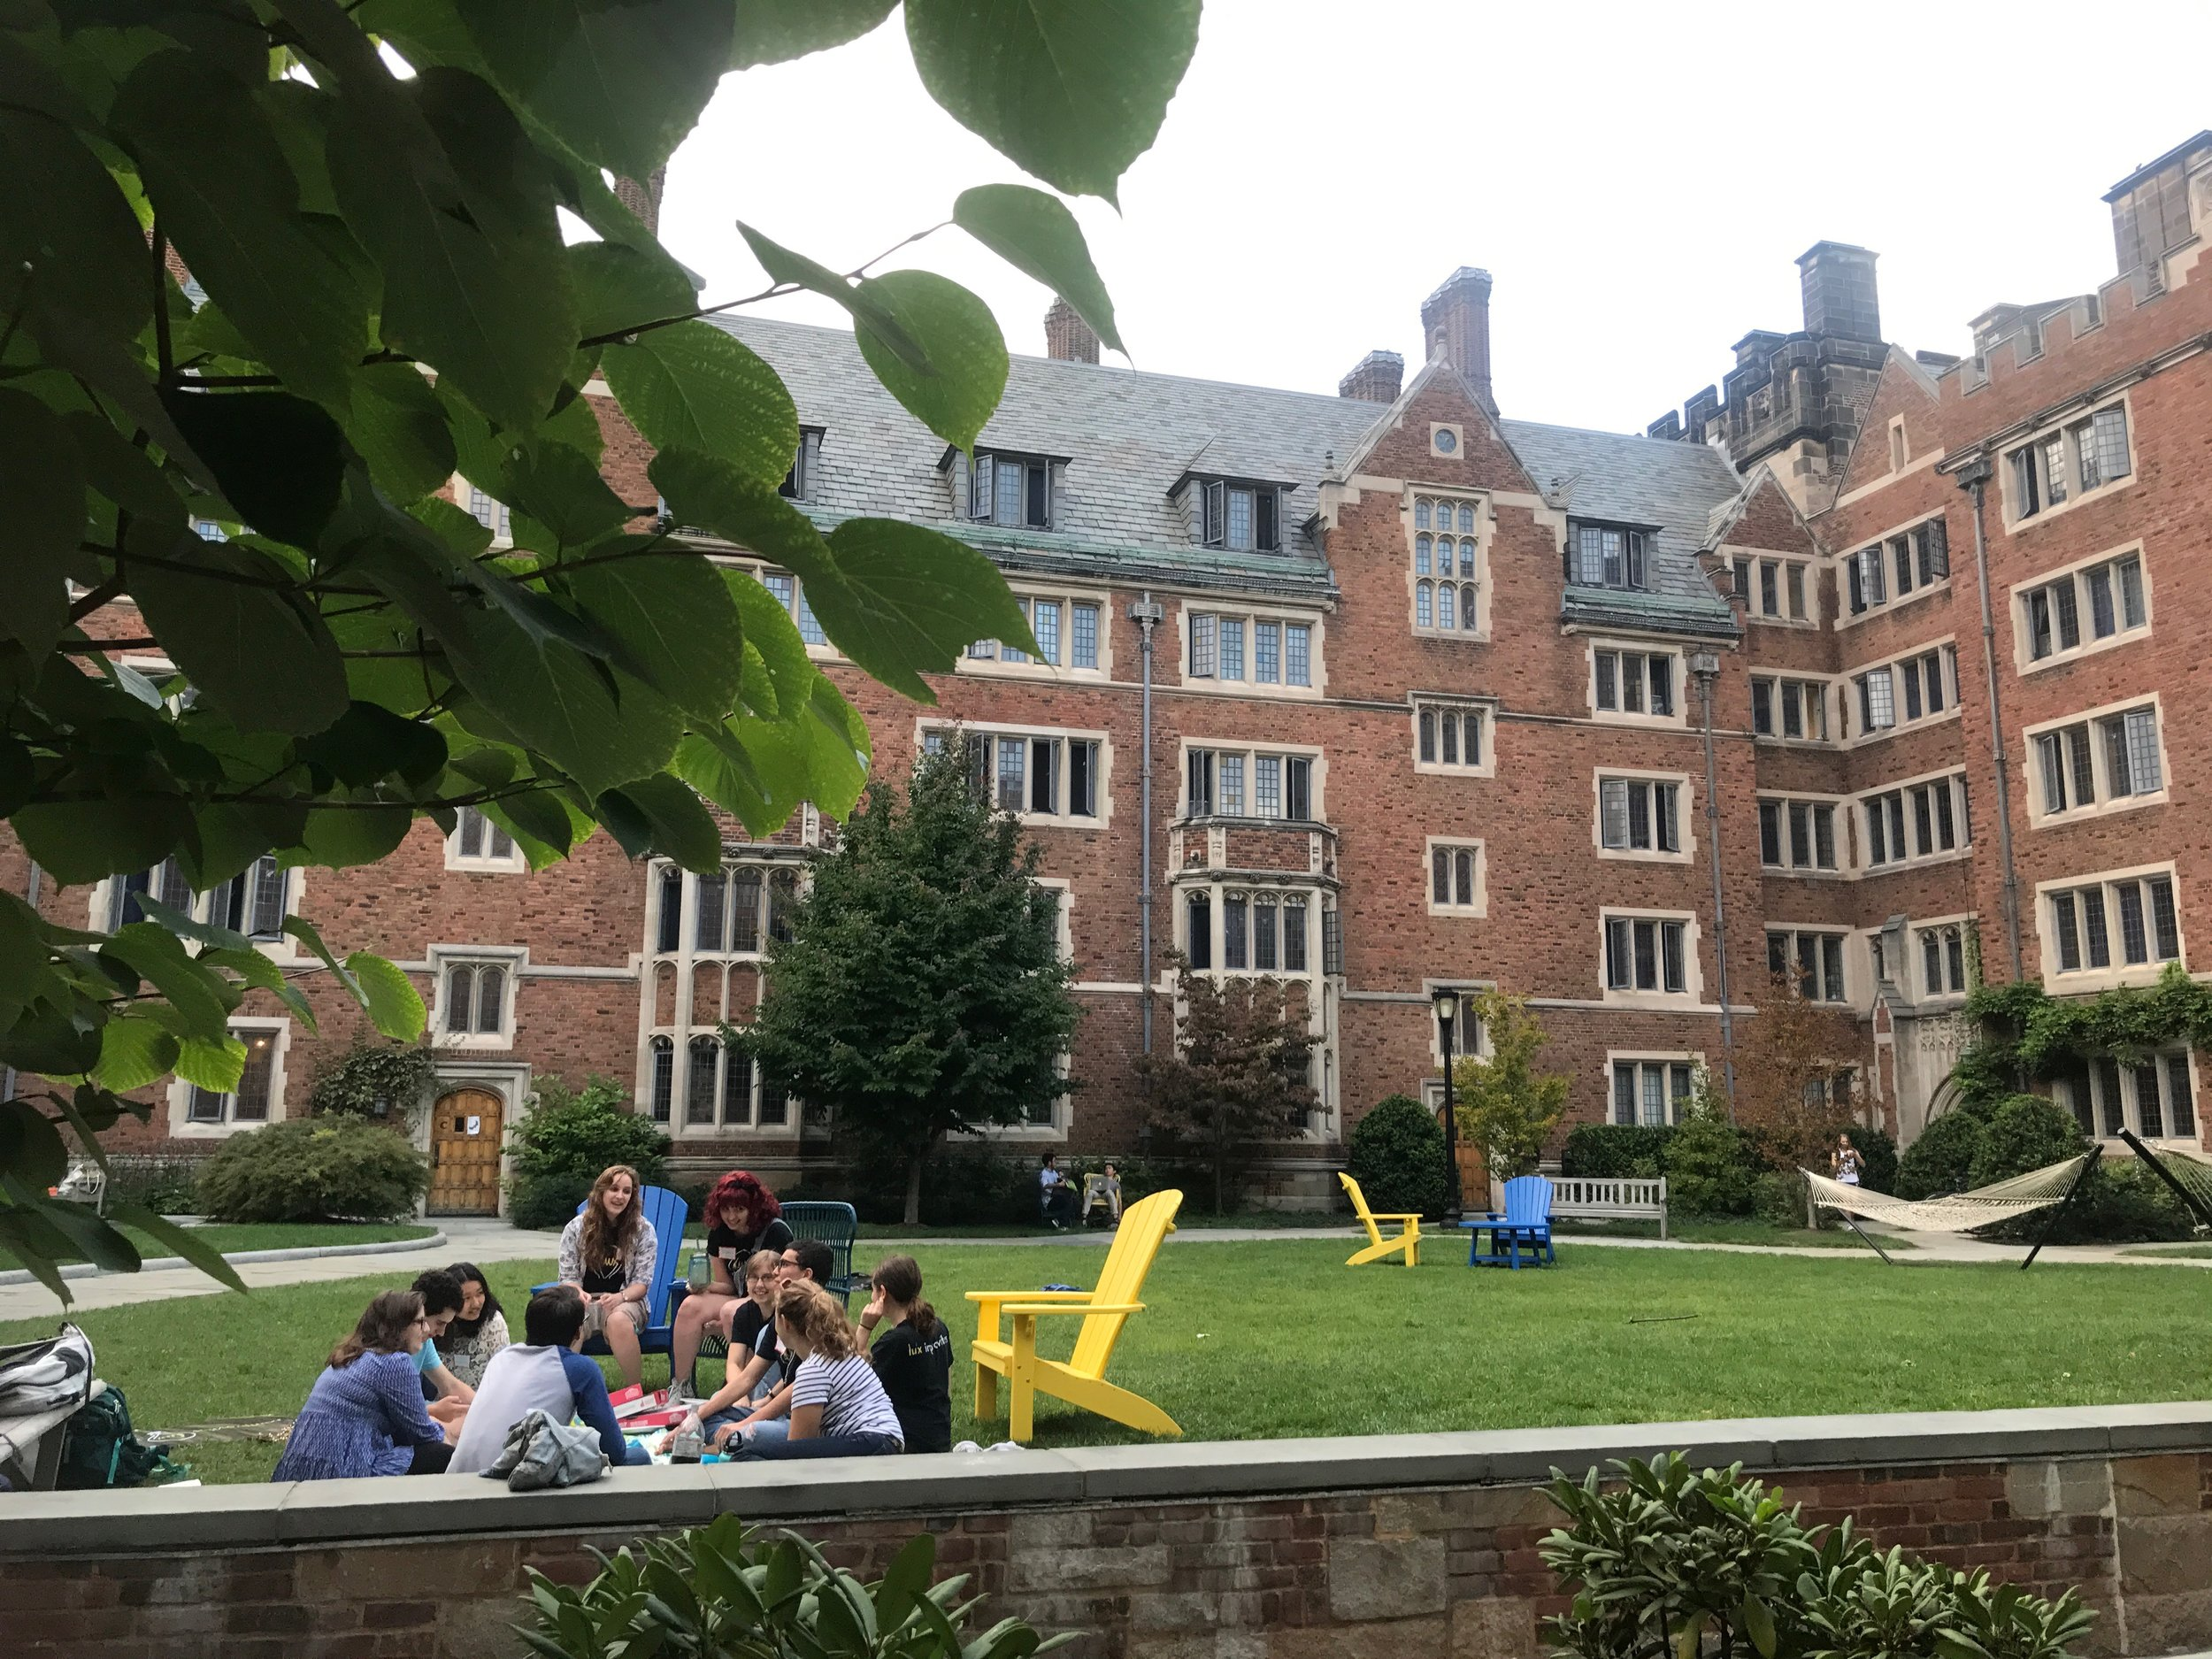 Students in the quad at Yale's Grace Hopper College, which until recently was named for pro-slavery statesman John C. Calhoun.